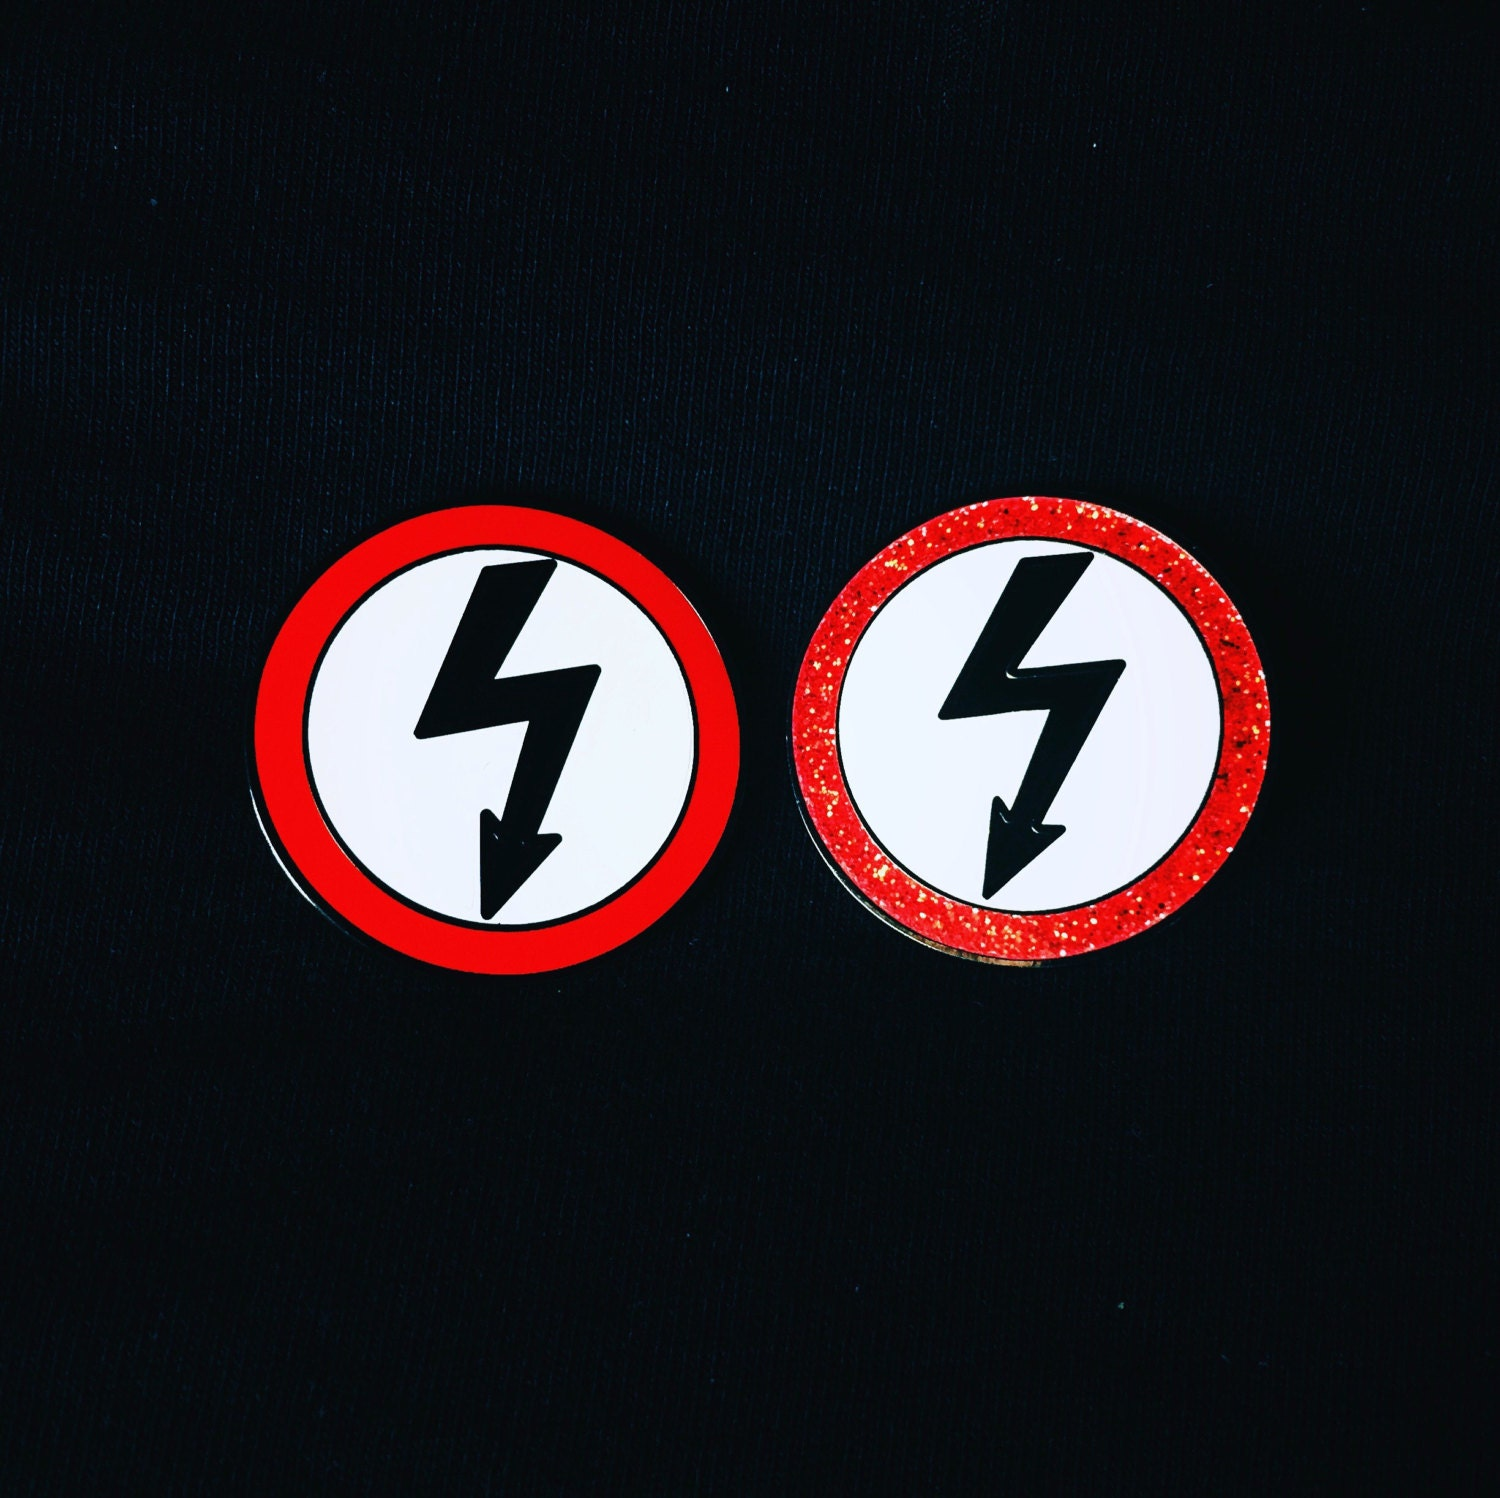 Handmade antichrist superstar marilyn manson lapel pin description handmade antichrist superstar marilyn manson buycottarizona Images